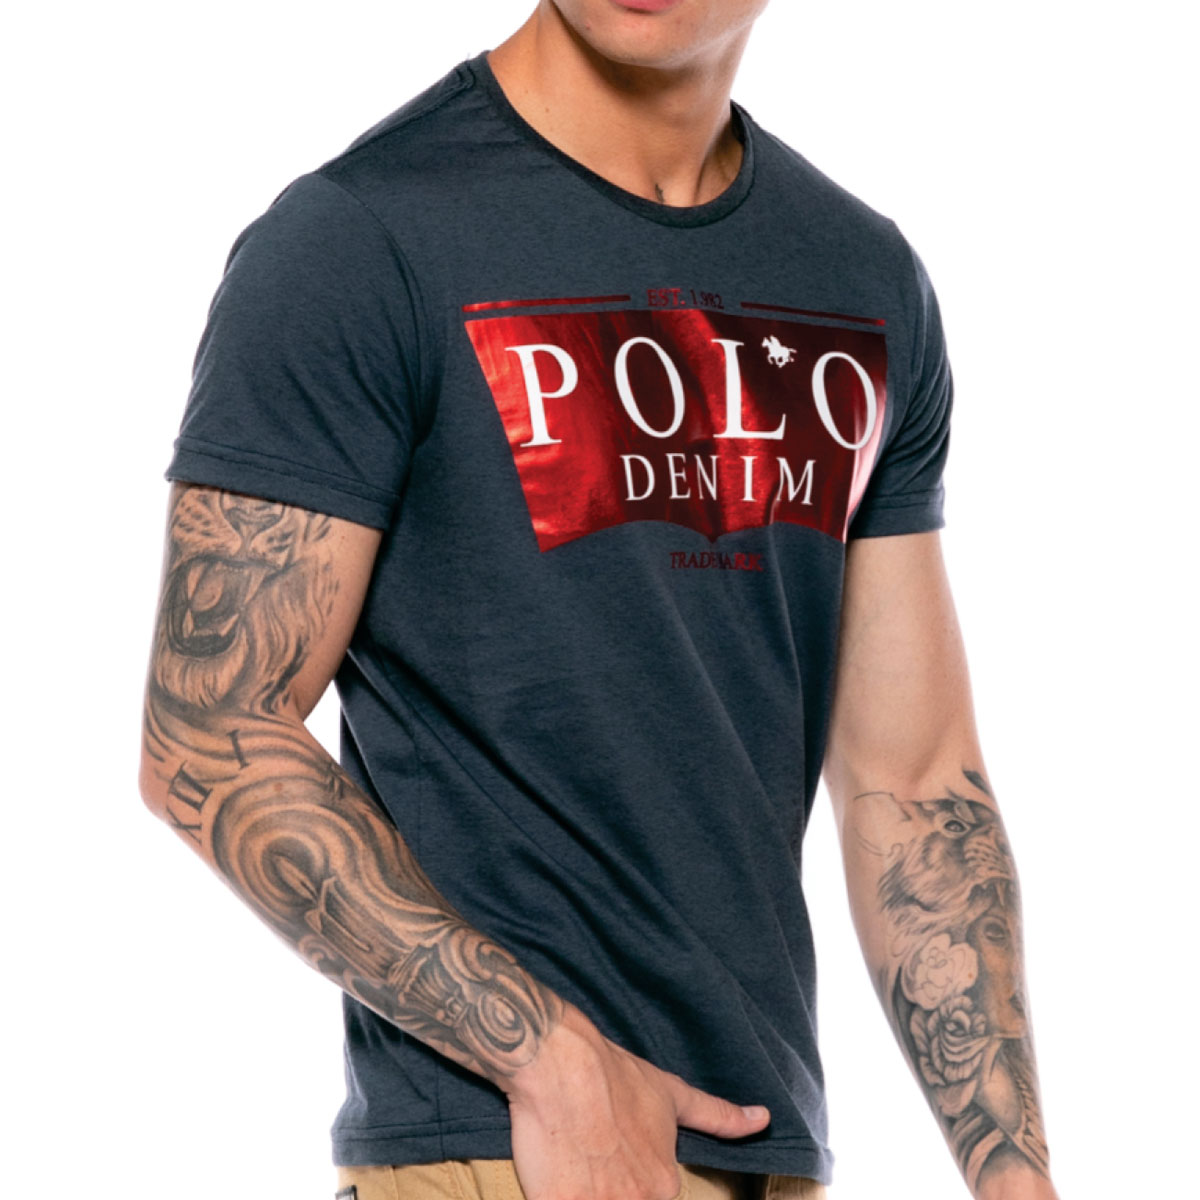 Kit compre 2 Leve 3 Camisetas Masculinas